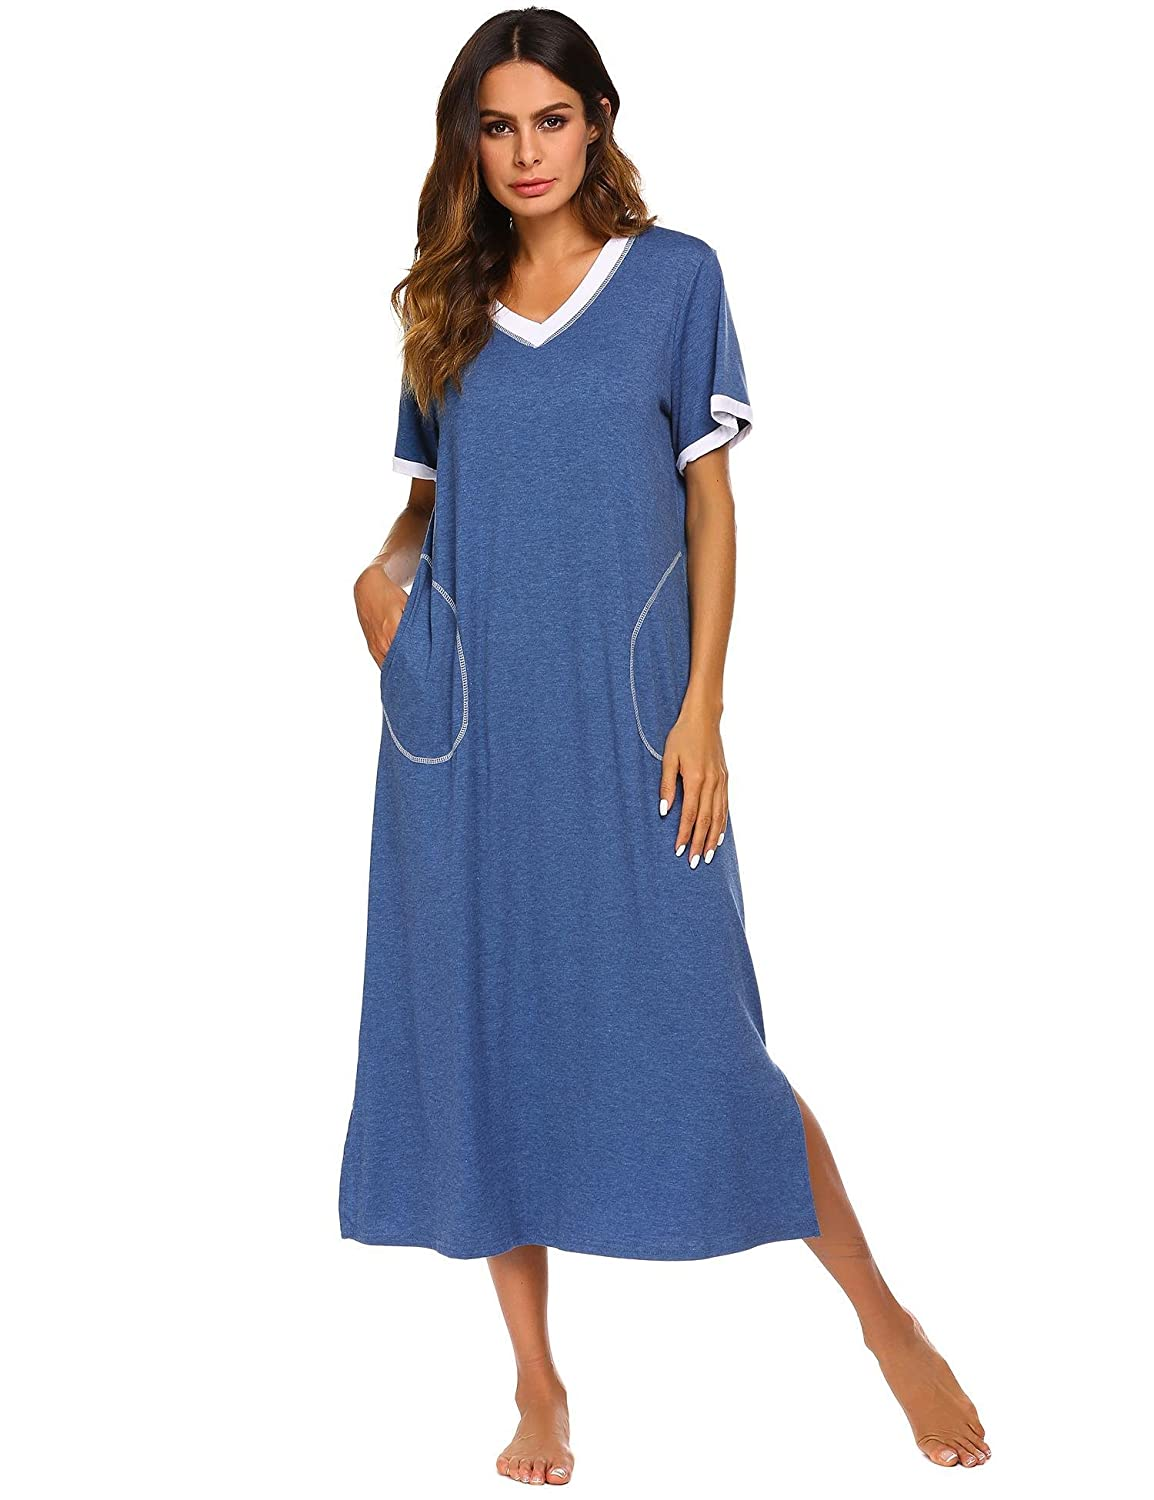 43301dc891 Comfy short-sleeved full-length sleep dress featuring curved hem with  v-neckline and pockets